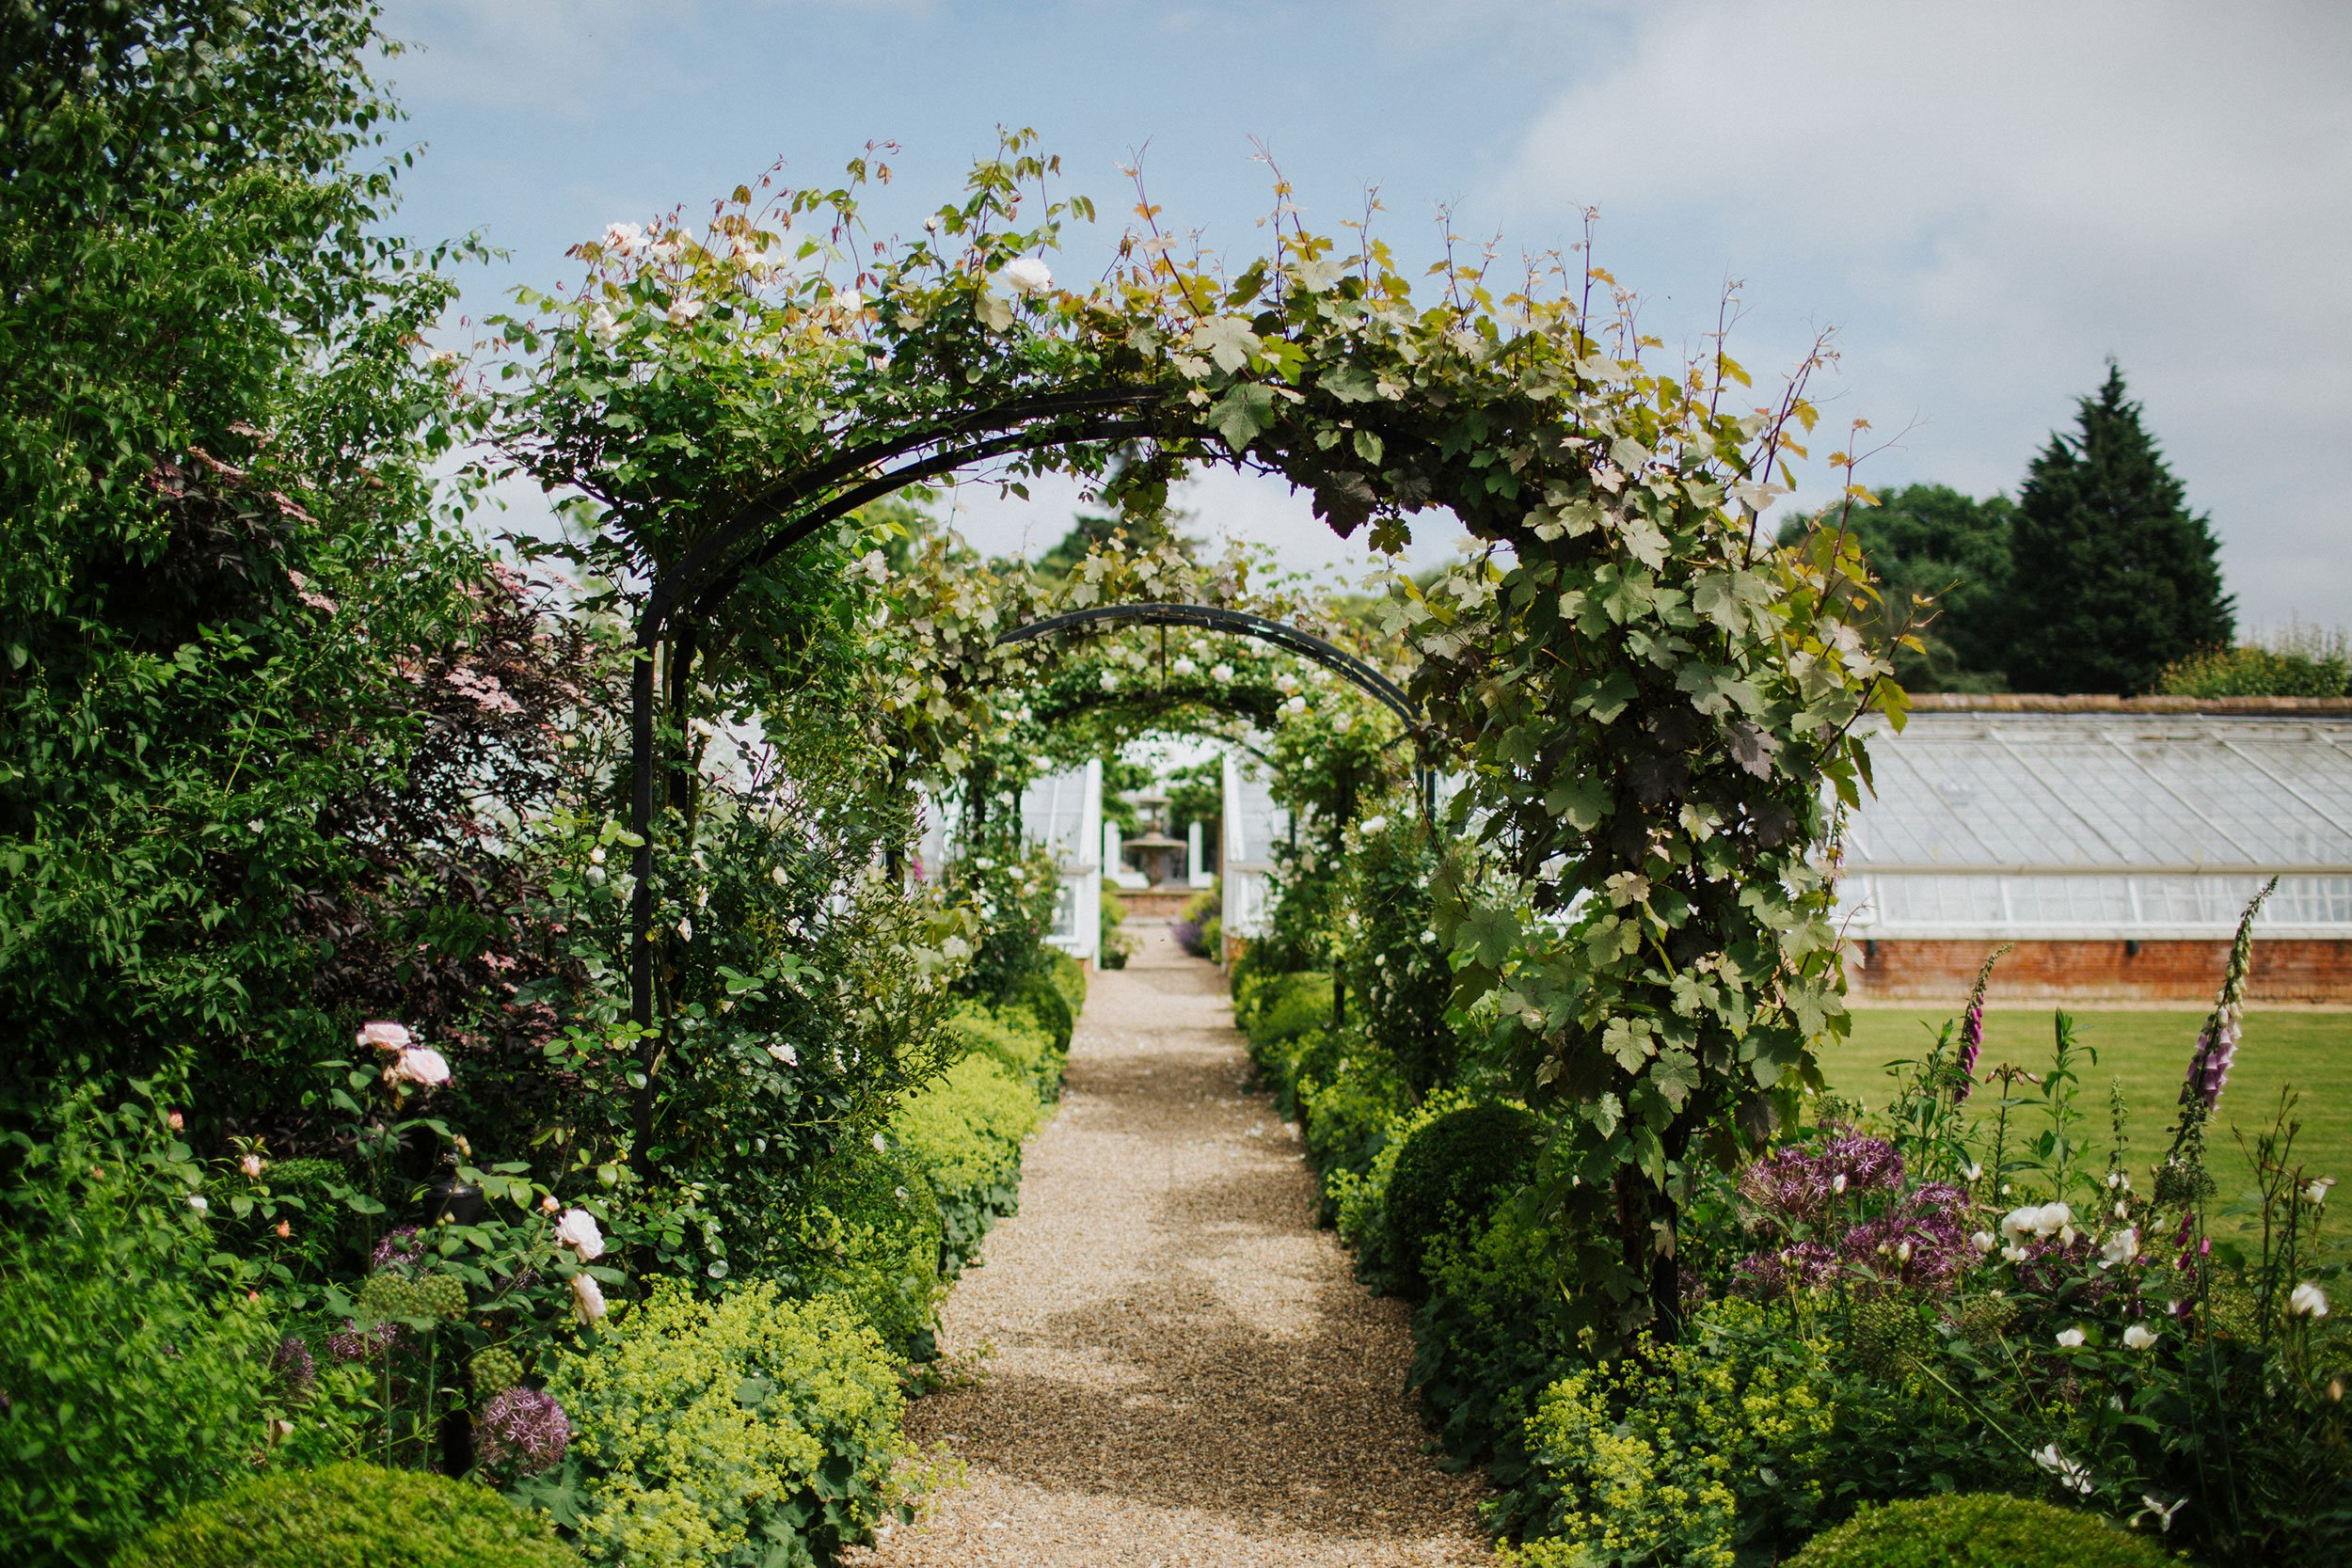 Use the gardens at Braxted Park wedding venue in Essex to capture beautiful wedding photos on your big day